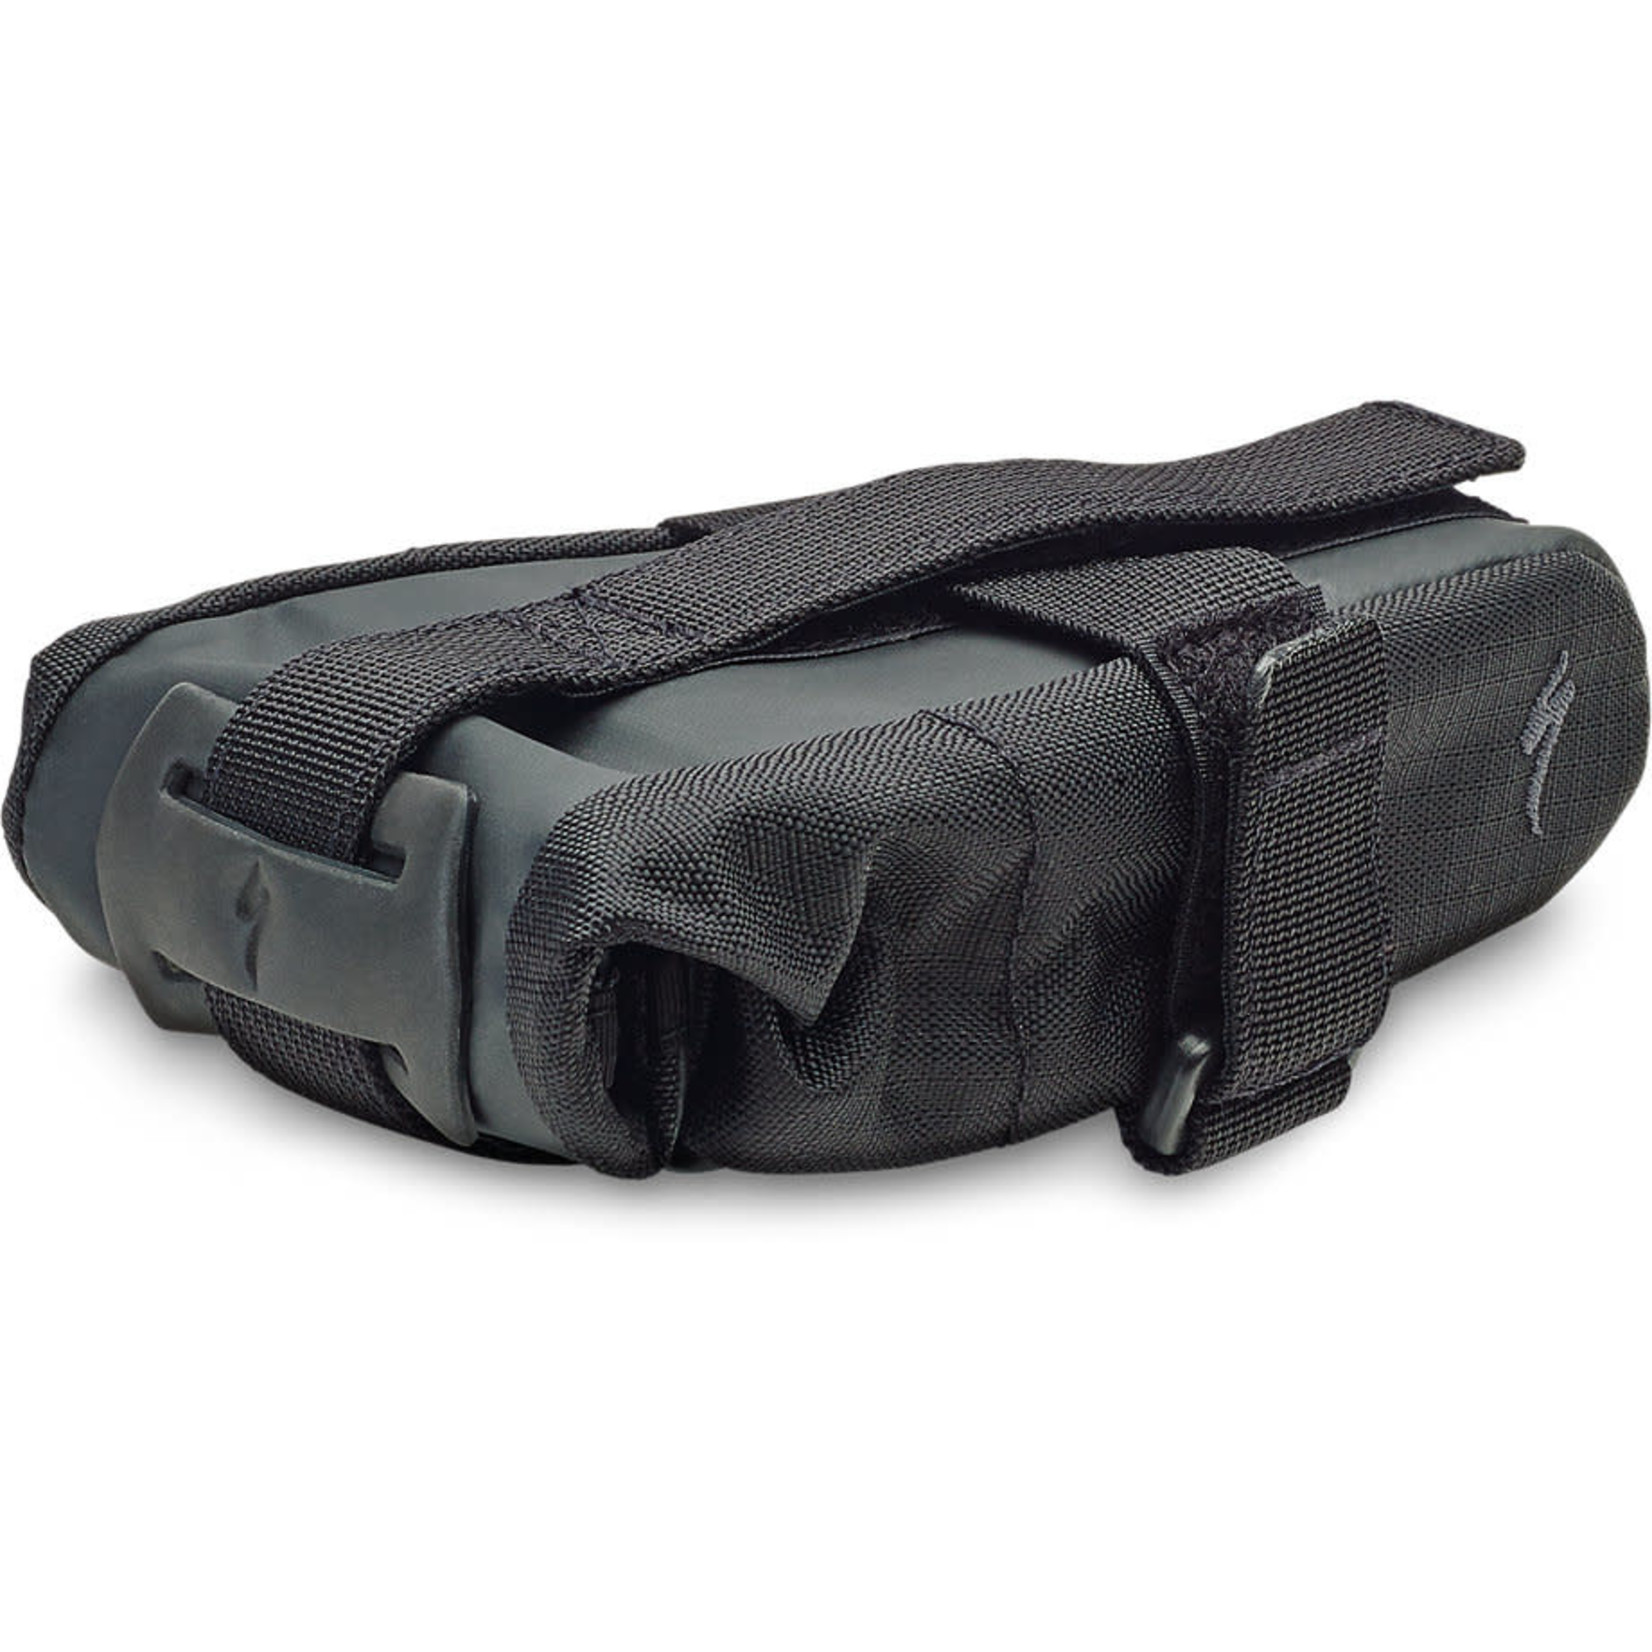 Specialized Specialized Seat Pack Medium